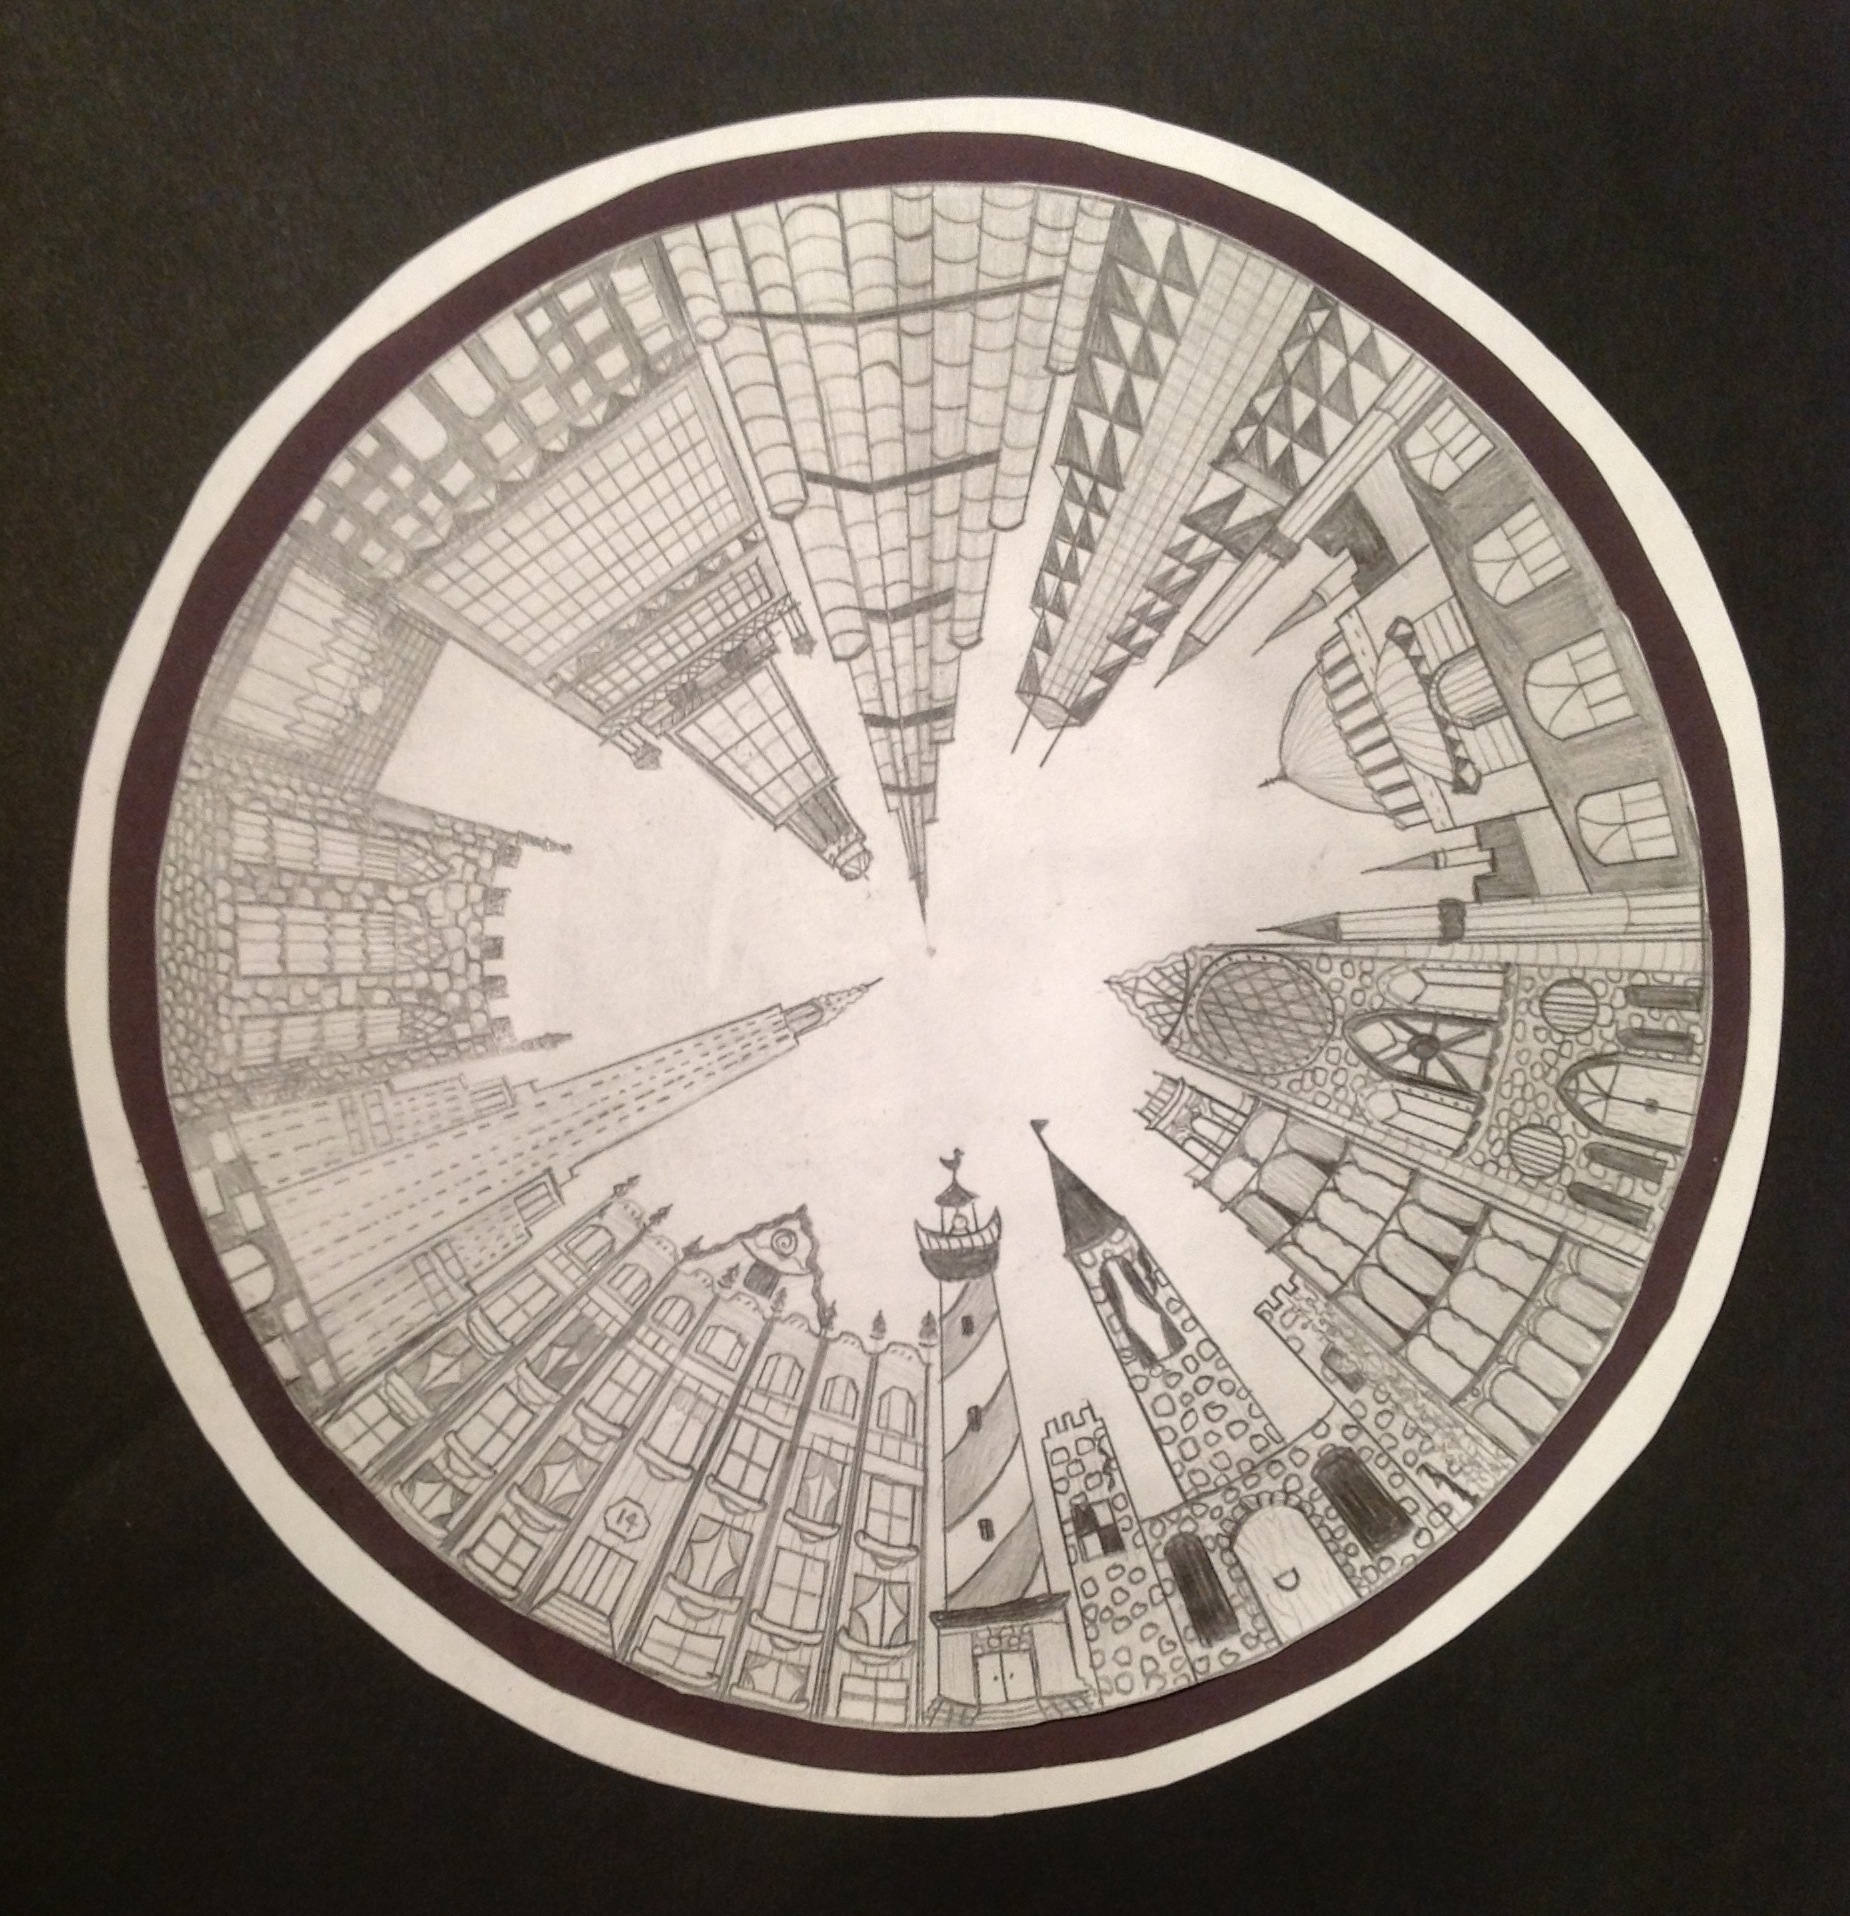 The Smartteacher Resource 1 Point Perspective City